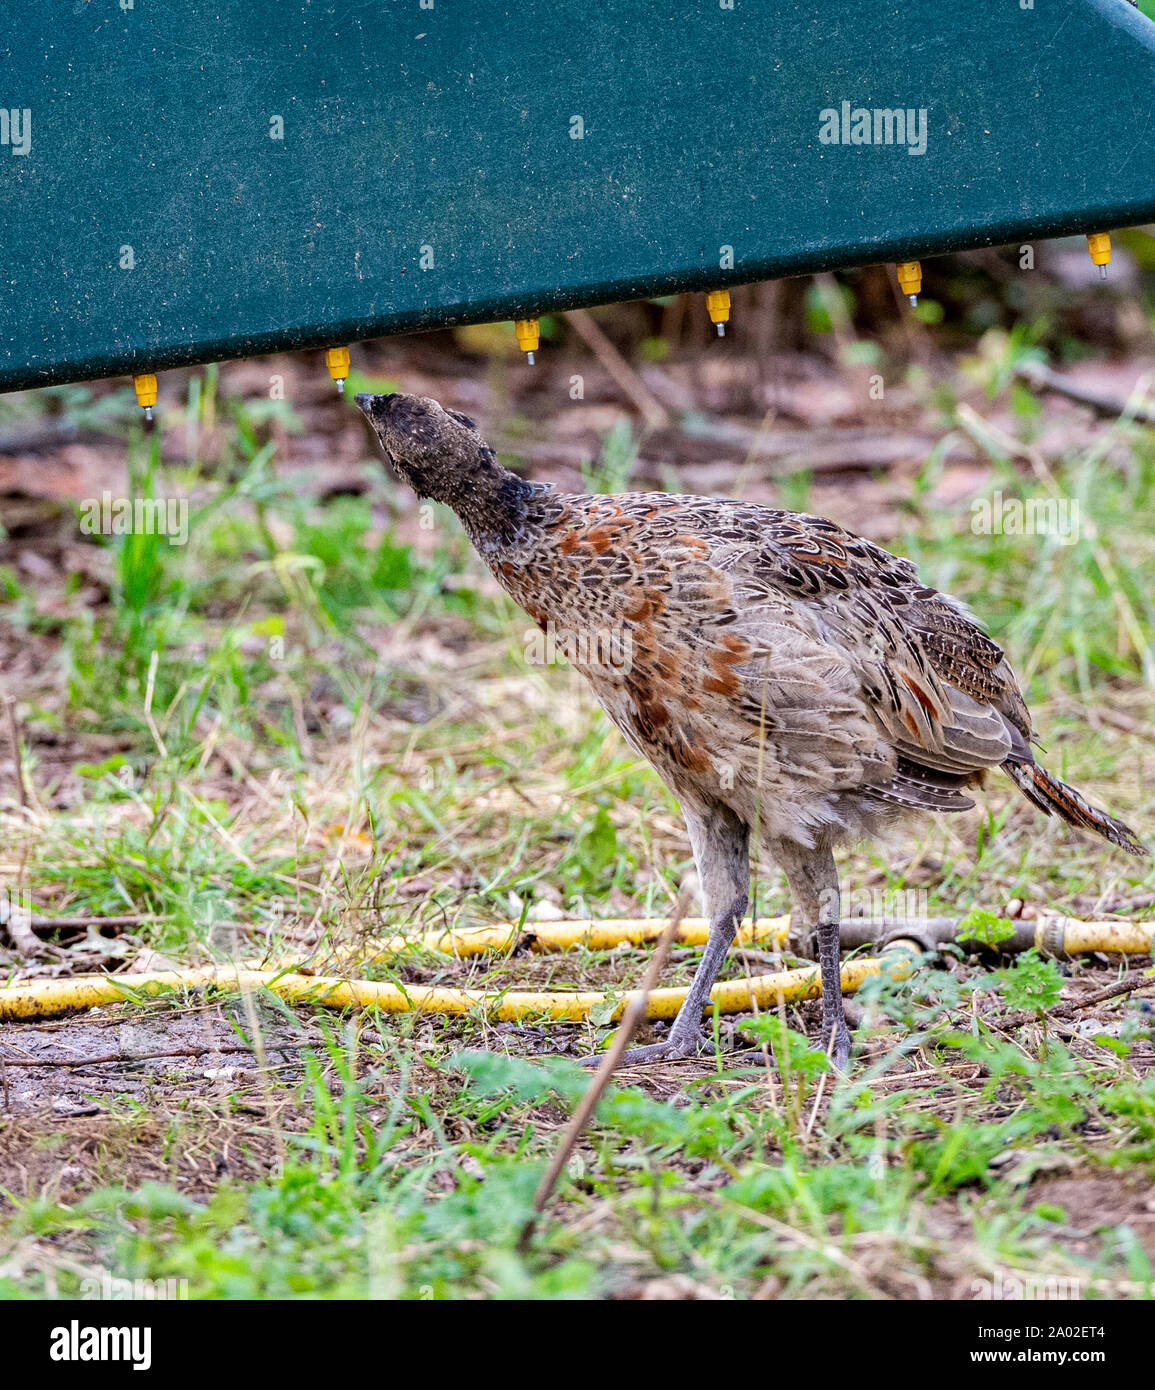 Ten week old pheasant chick, (Phasianus colchicus) often known as a poult, drinking on a drinking system, after being released into a gamekeepers release pen on an English estate Stock Photo